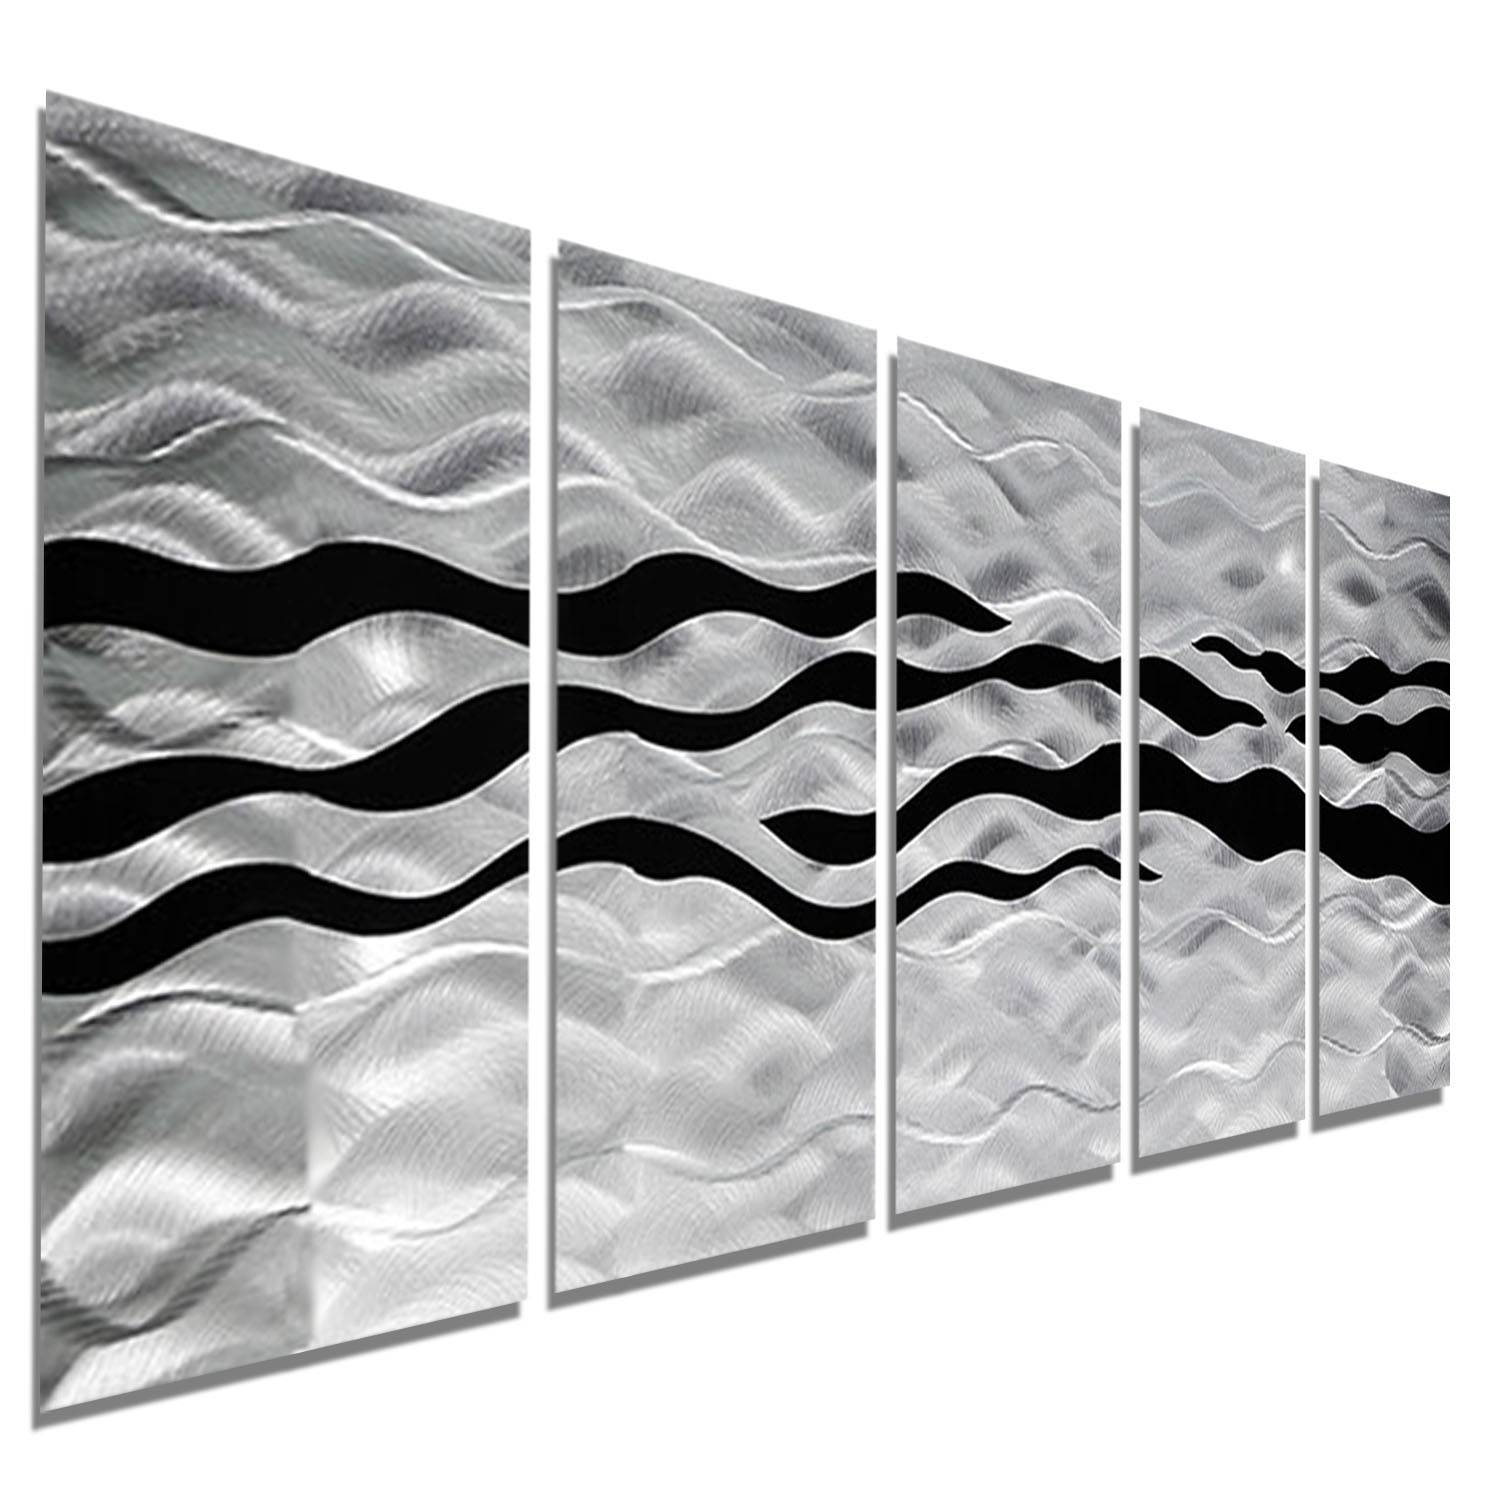 Onyx Oceana – Silver And Black Metal Wall Art – 5 Panel Wall Décor Inside Current Black And Silver Metal Wall Art (View 8 of 20)